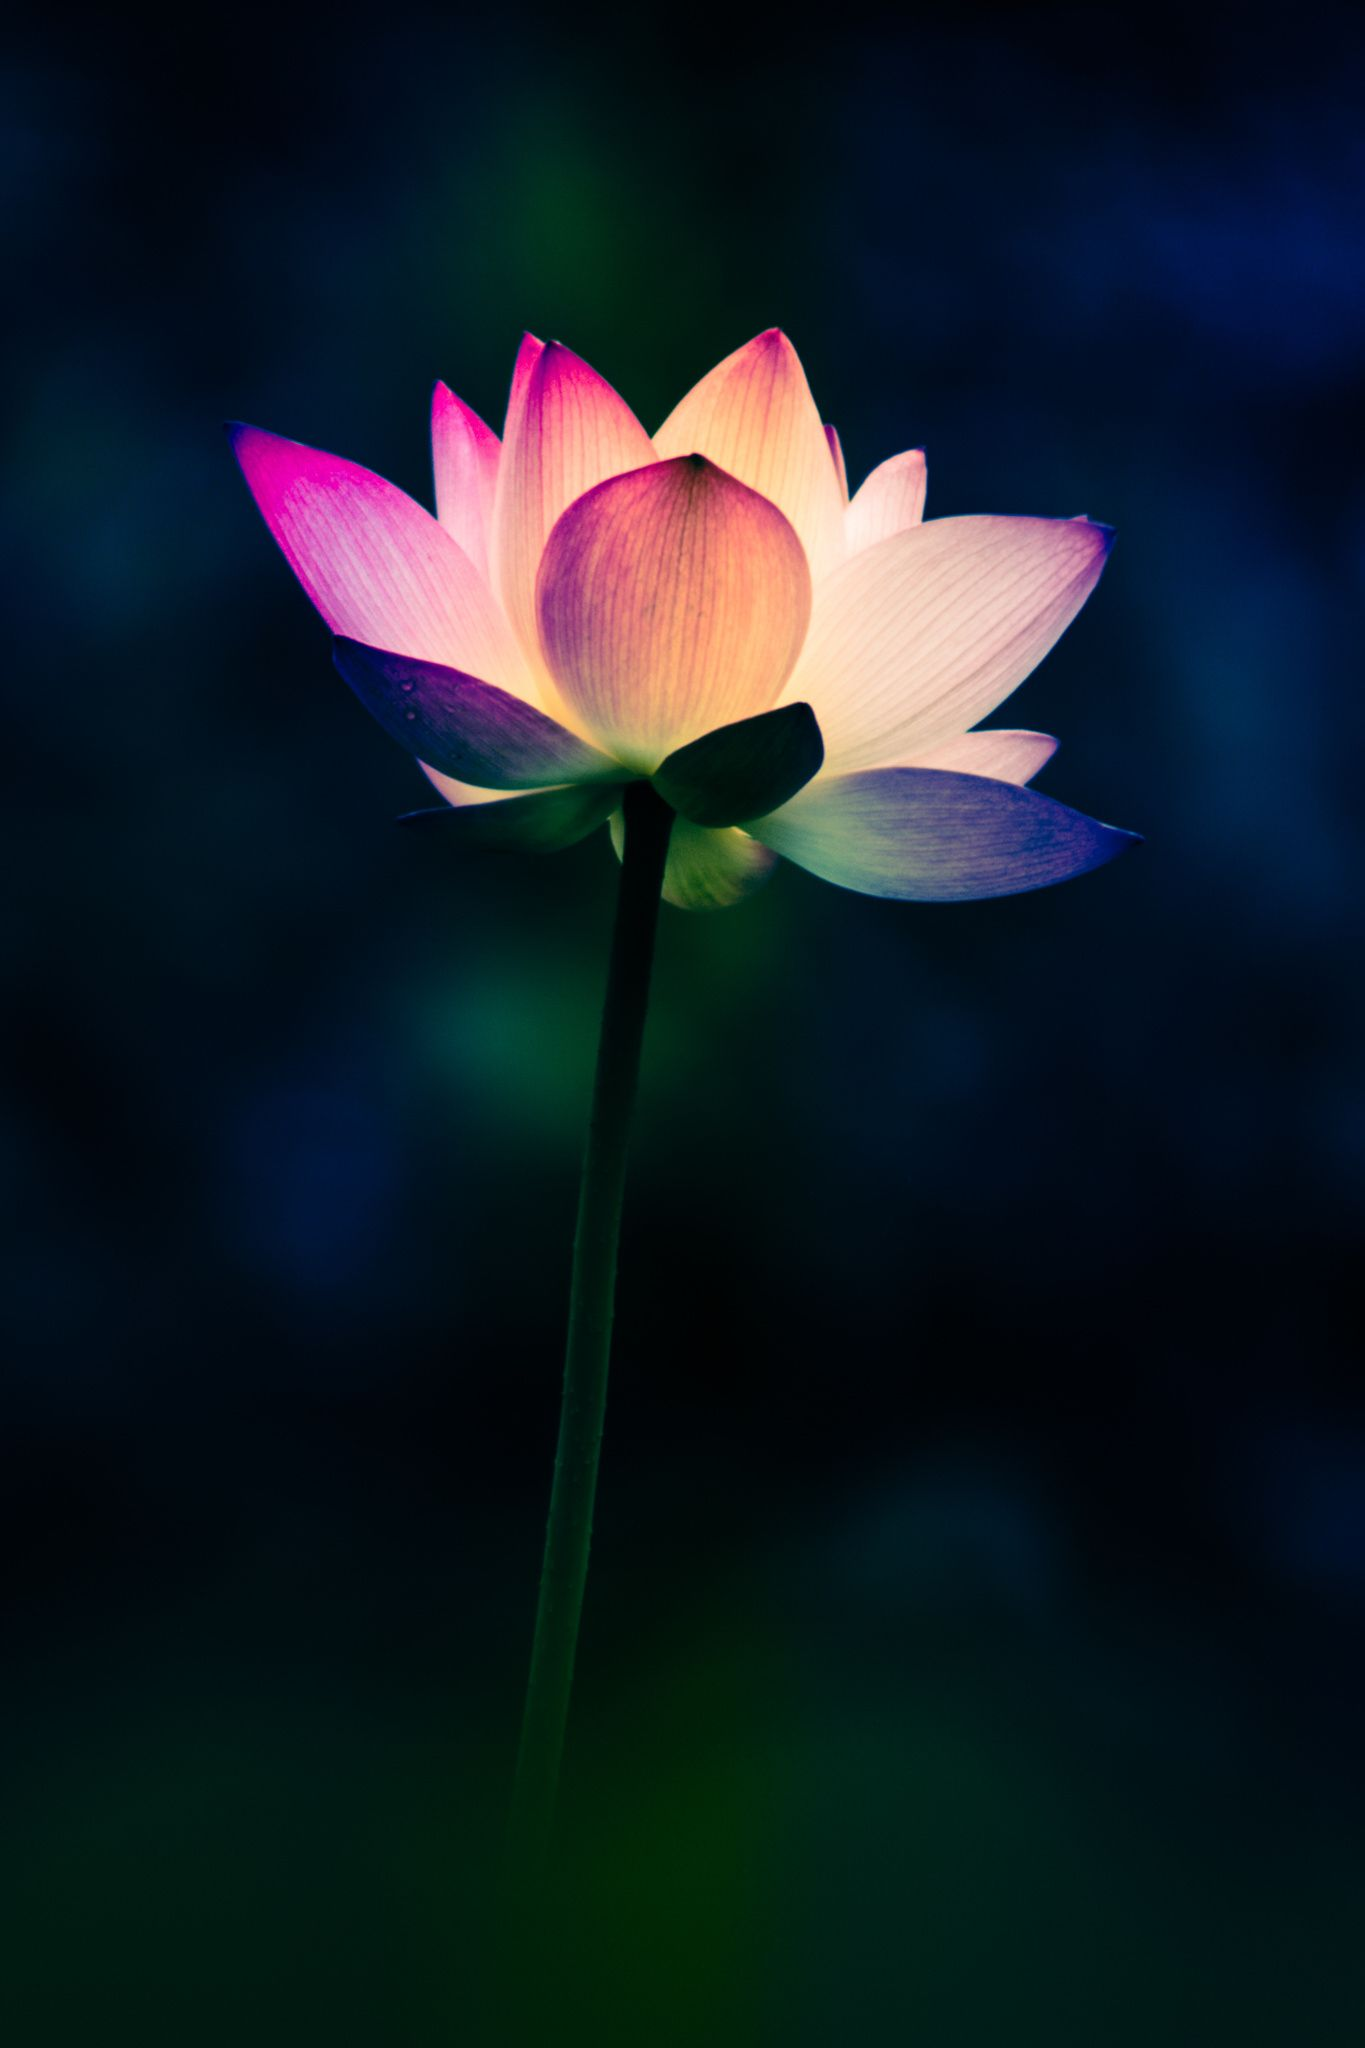 Rainbow lotus by ng wai chor on 500px ssen pinterest lotus rainbow lotus by ng wai chor on 500px izmirmasajfo